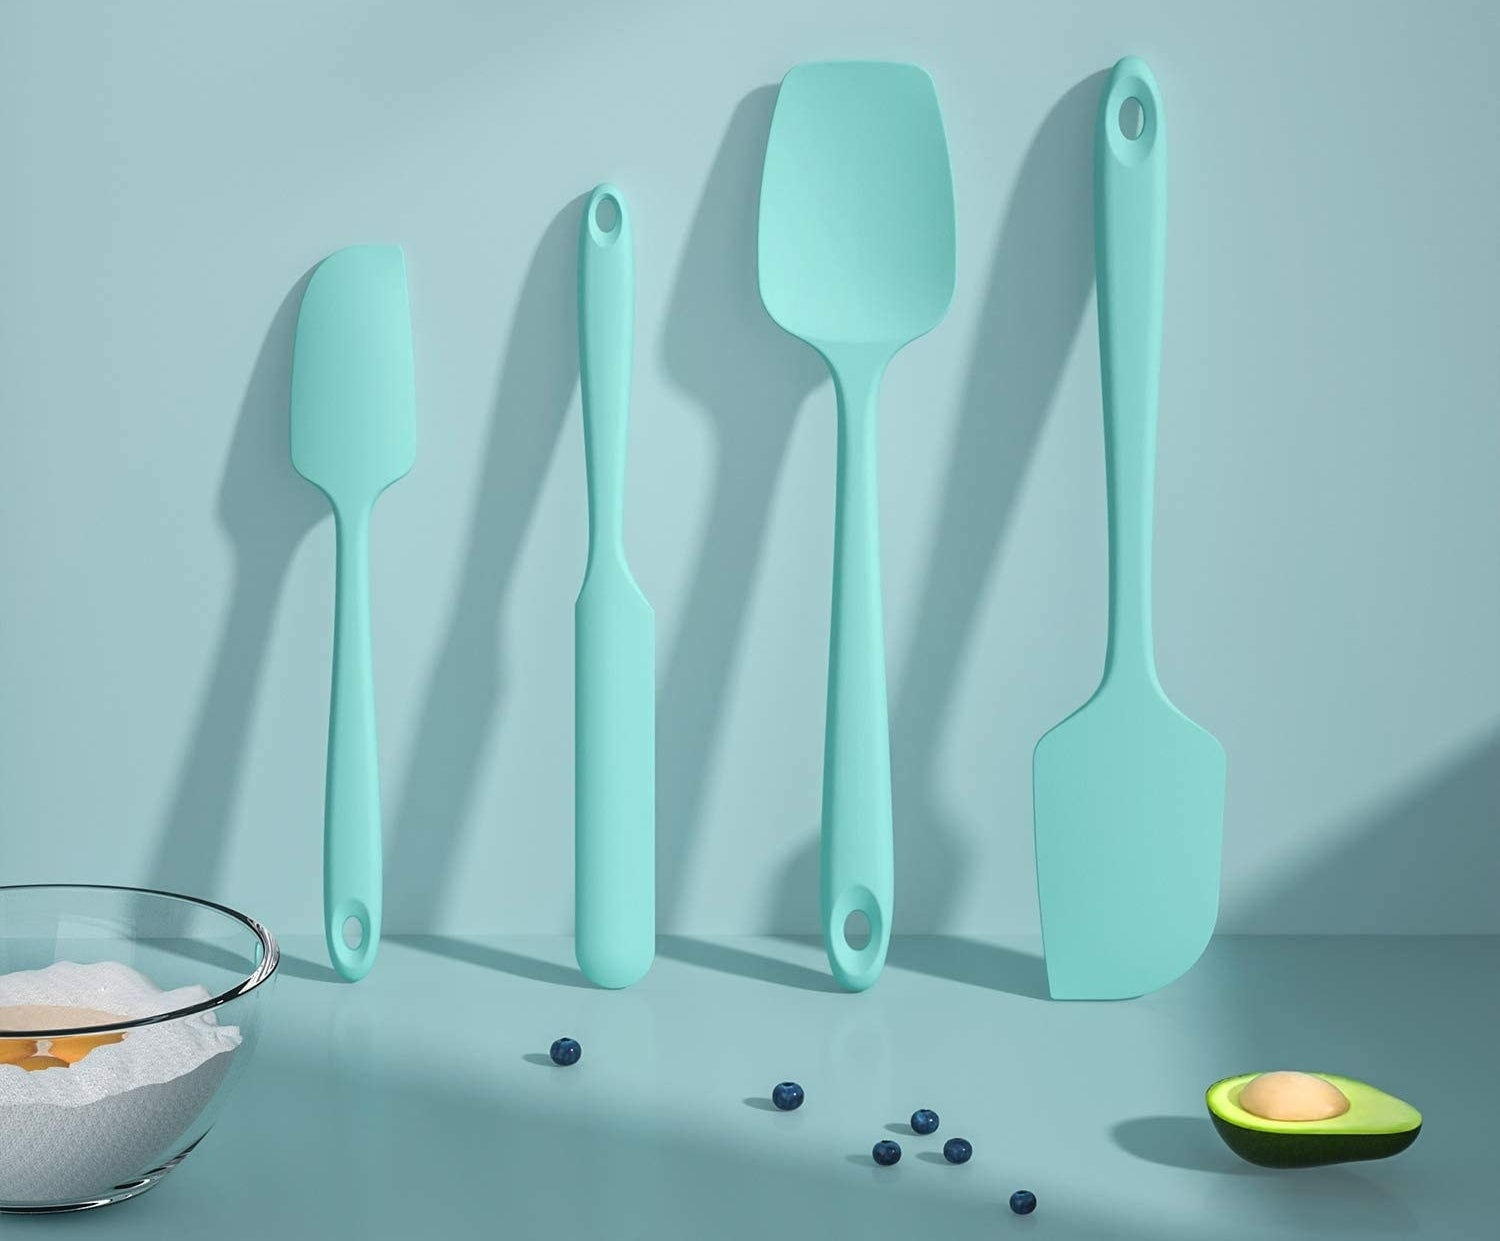 A set of four silicone spatulas leaning against a kitchen wall